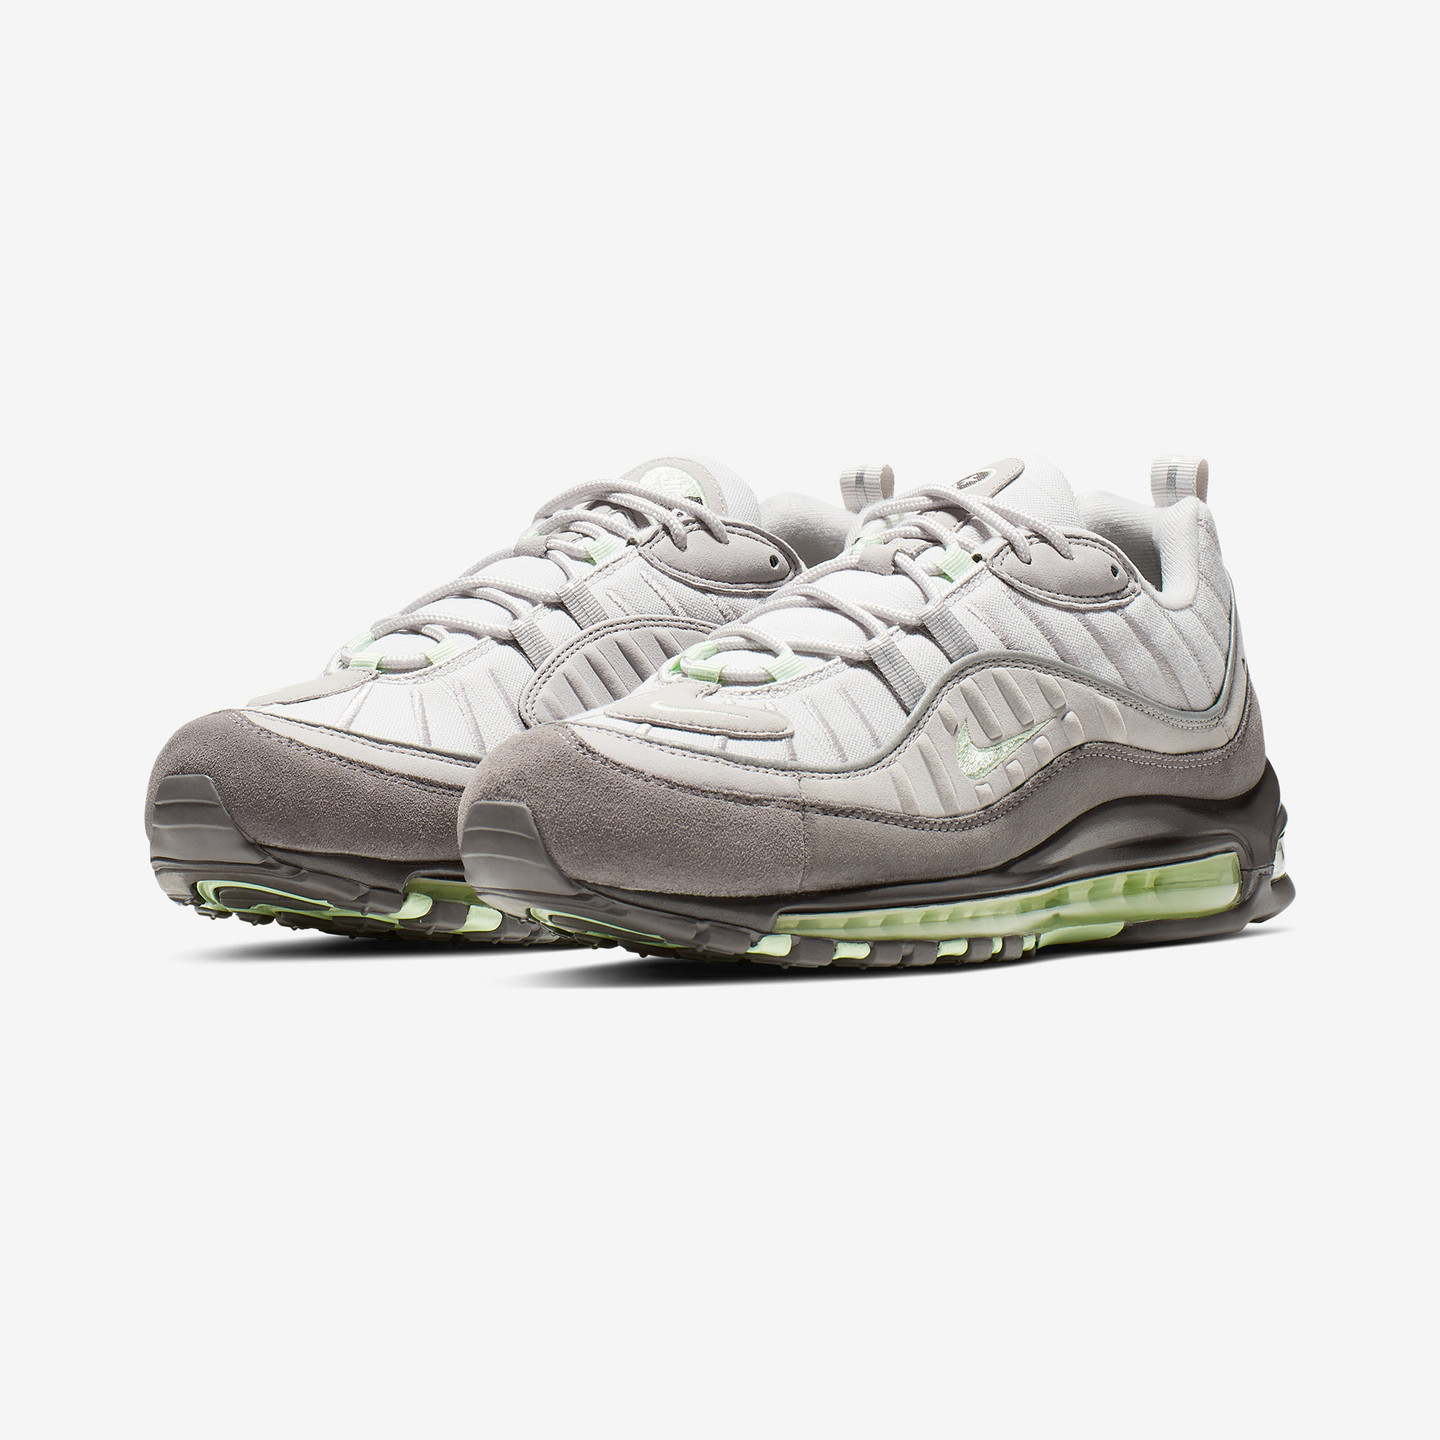 Nike Air Max 98 'Fresh Mint' Vast Grey / Fresh Mint / Atmosphere Grey 640744-011